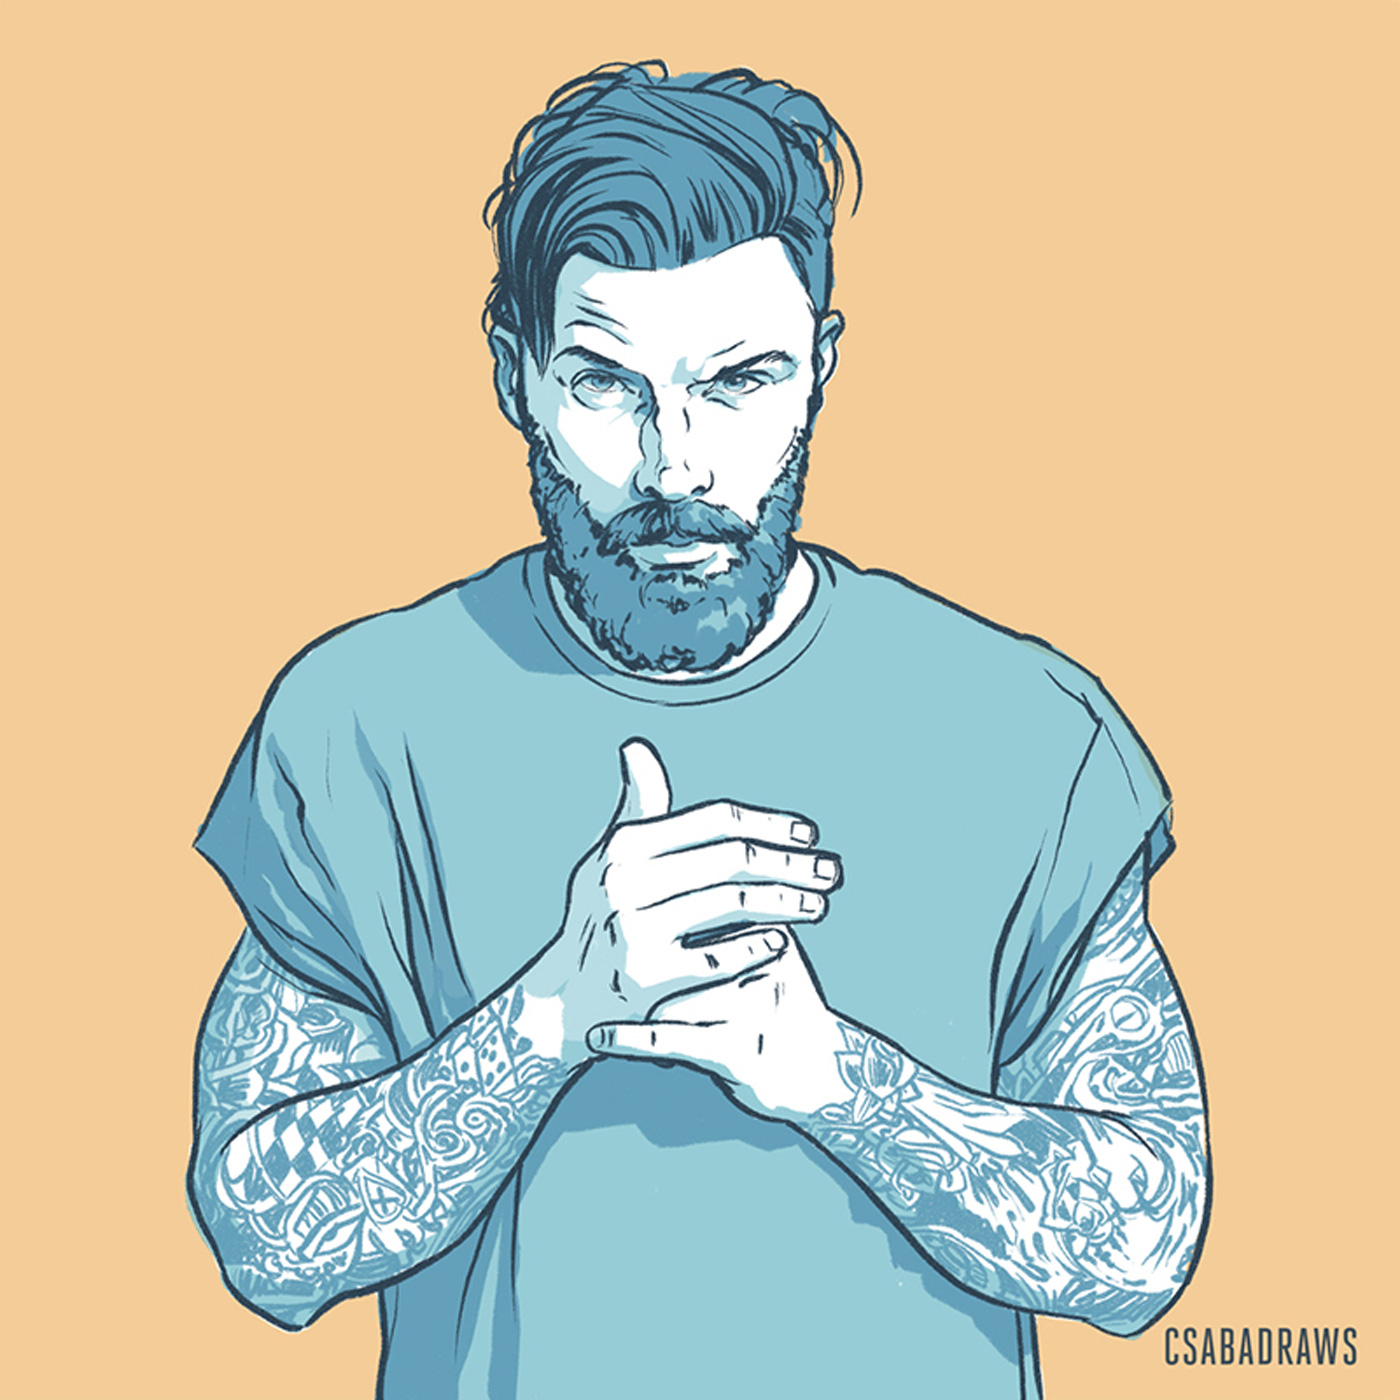 Drawing of a Guy With Tattoo and Beard